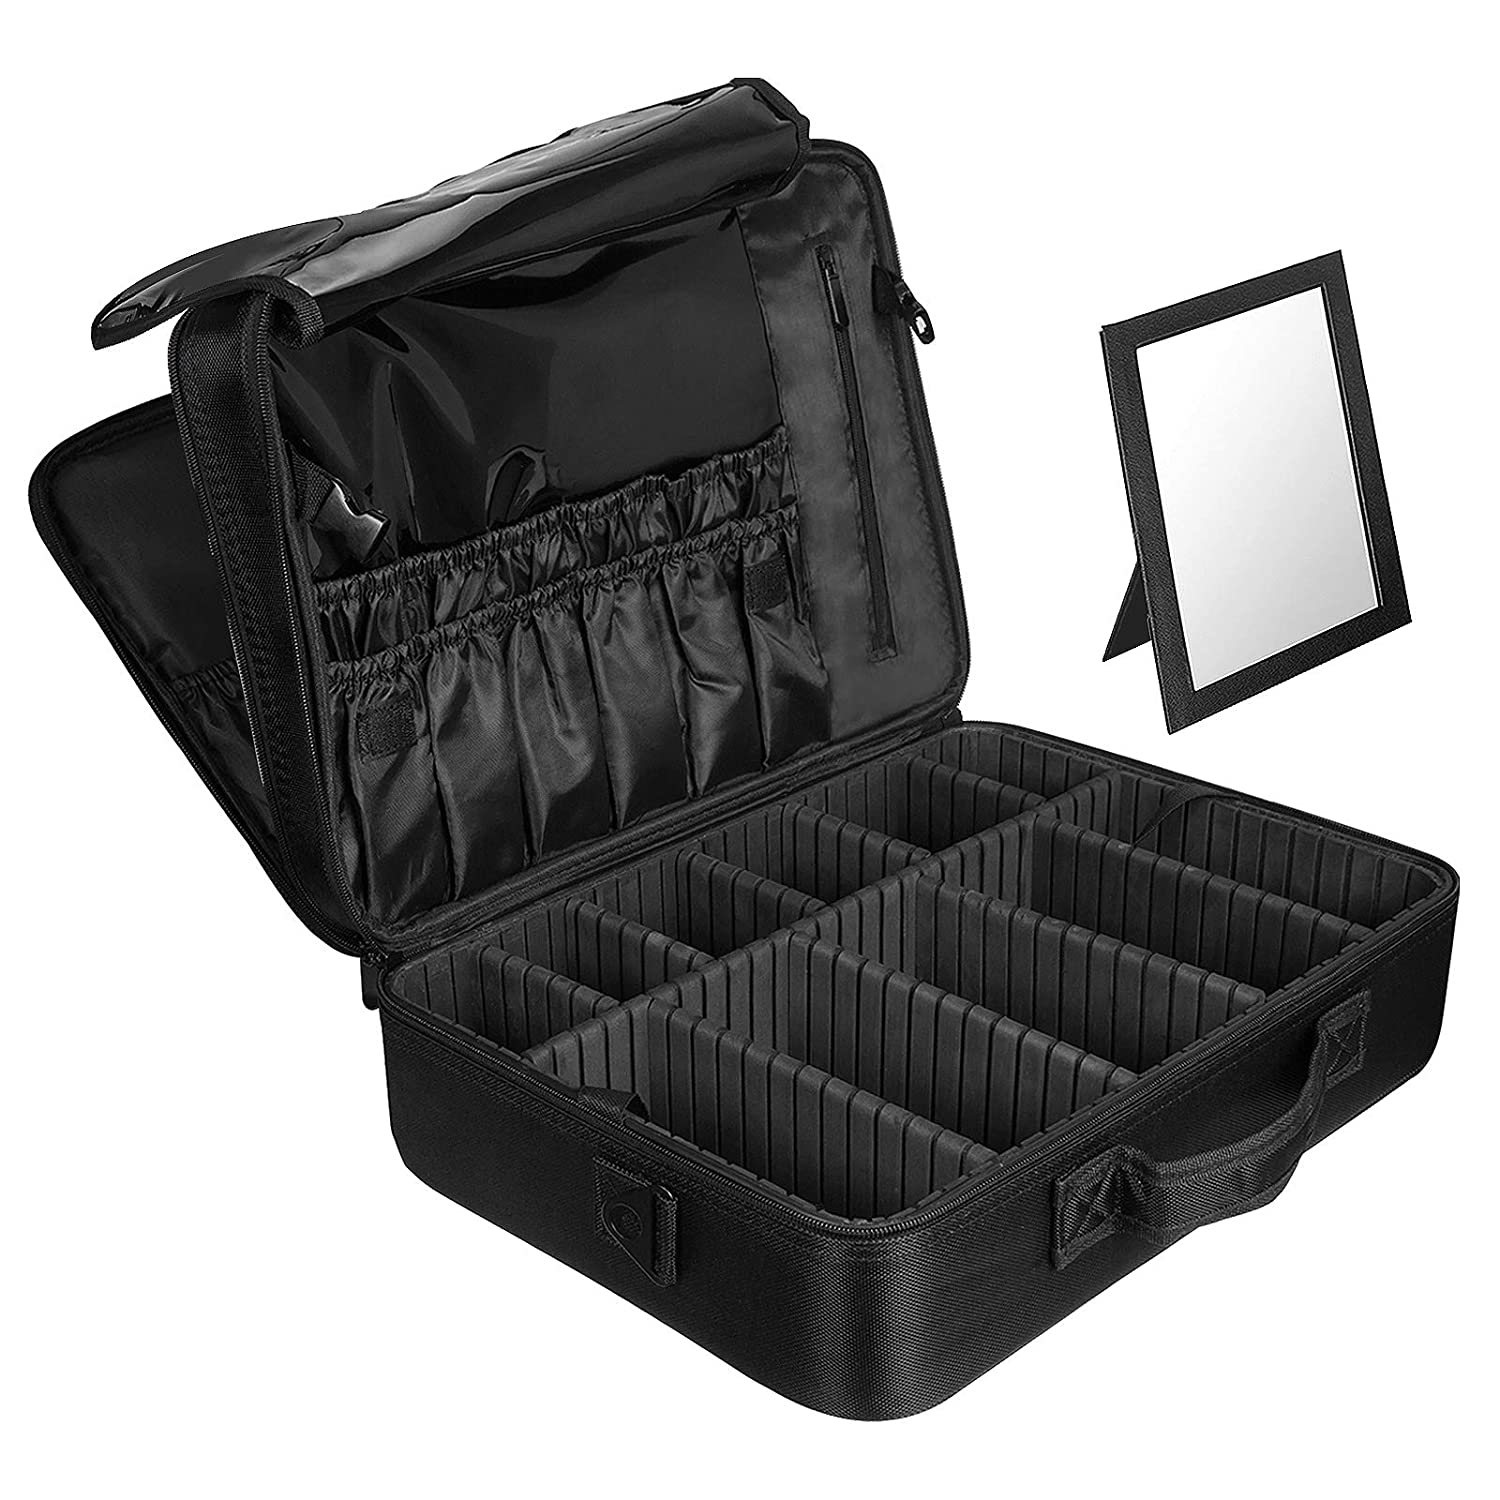 3ade014b9fa Professional Make-up Bag with Compartments